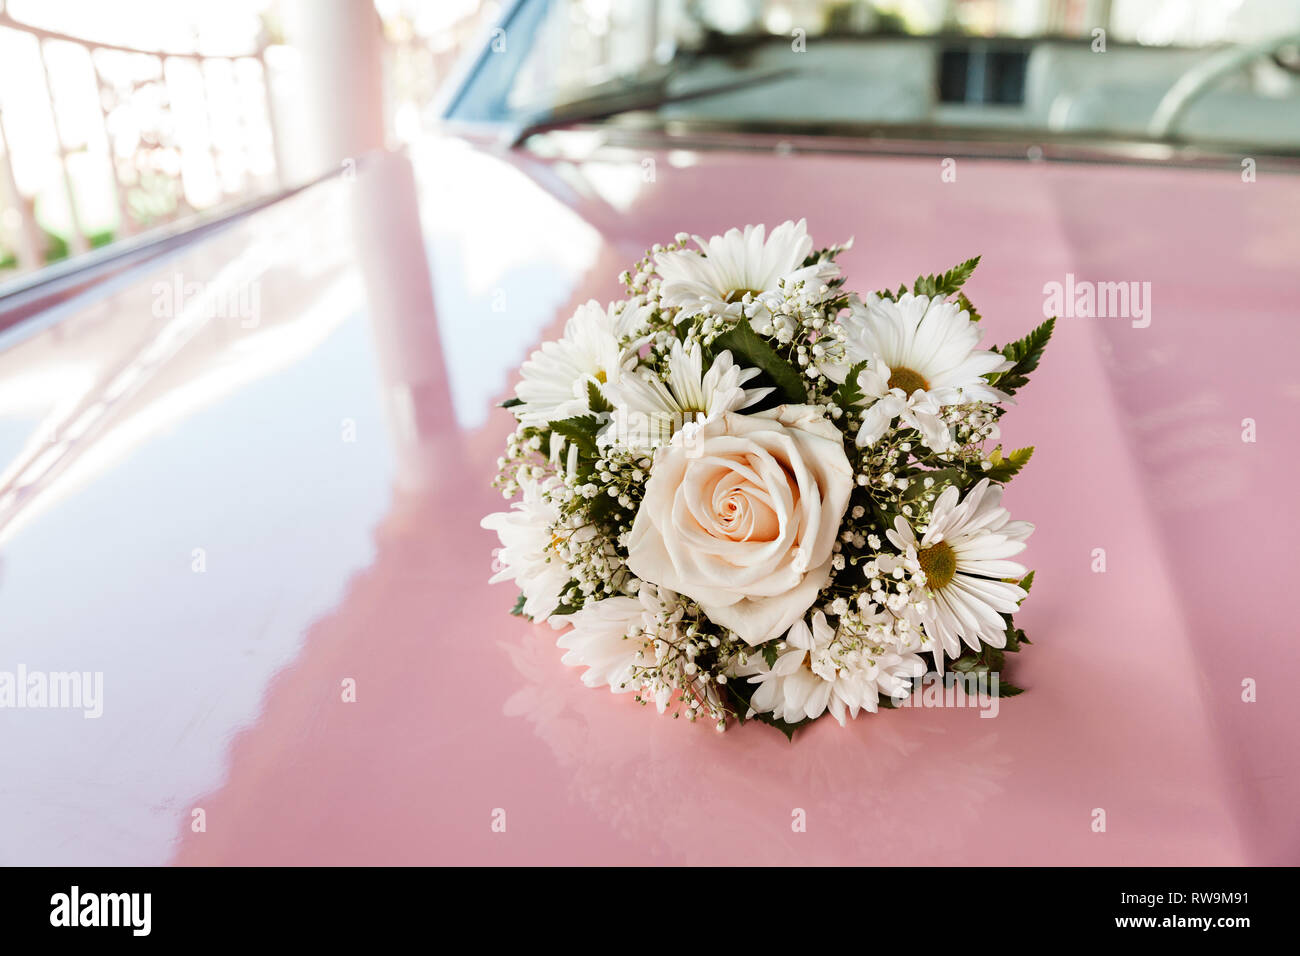 Wedding Bouquet On The Top Of Pink Car, Outdoor Wedding Day Stock Photo